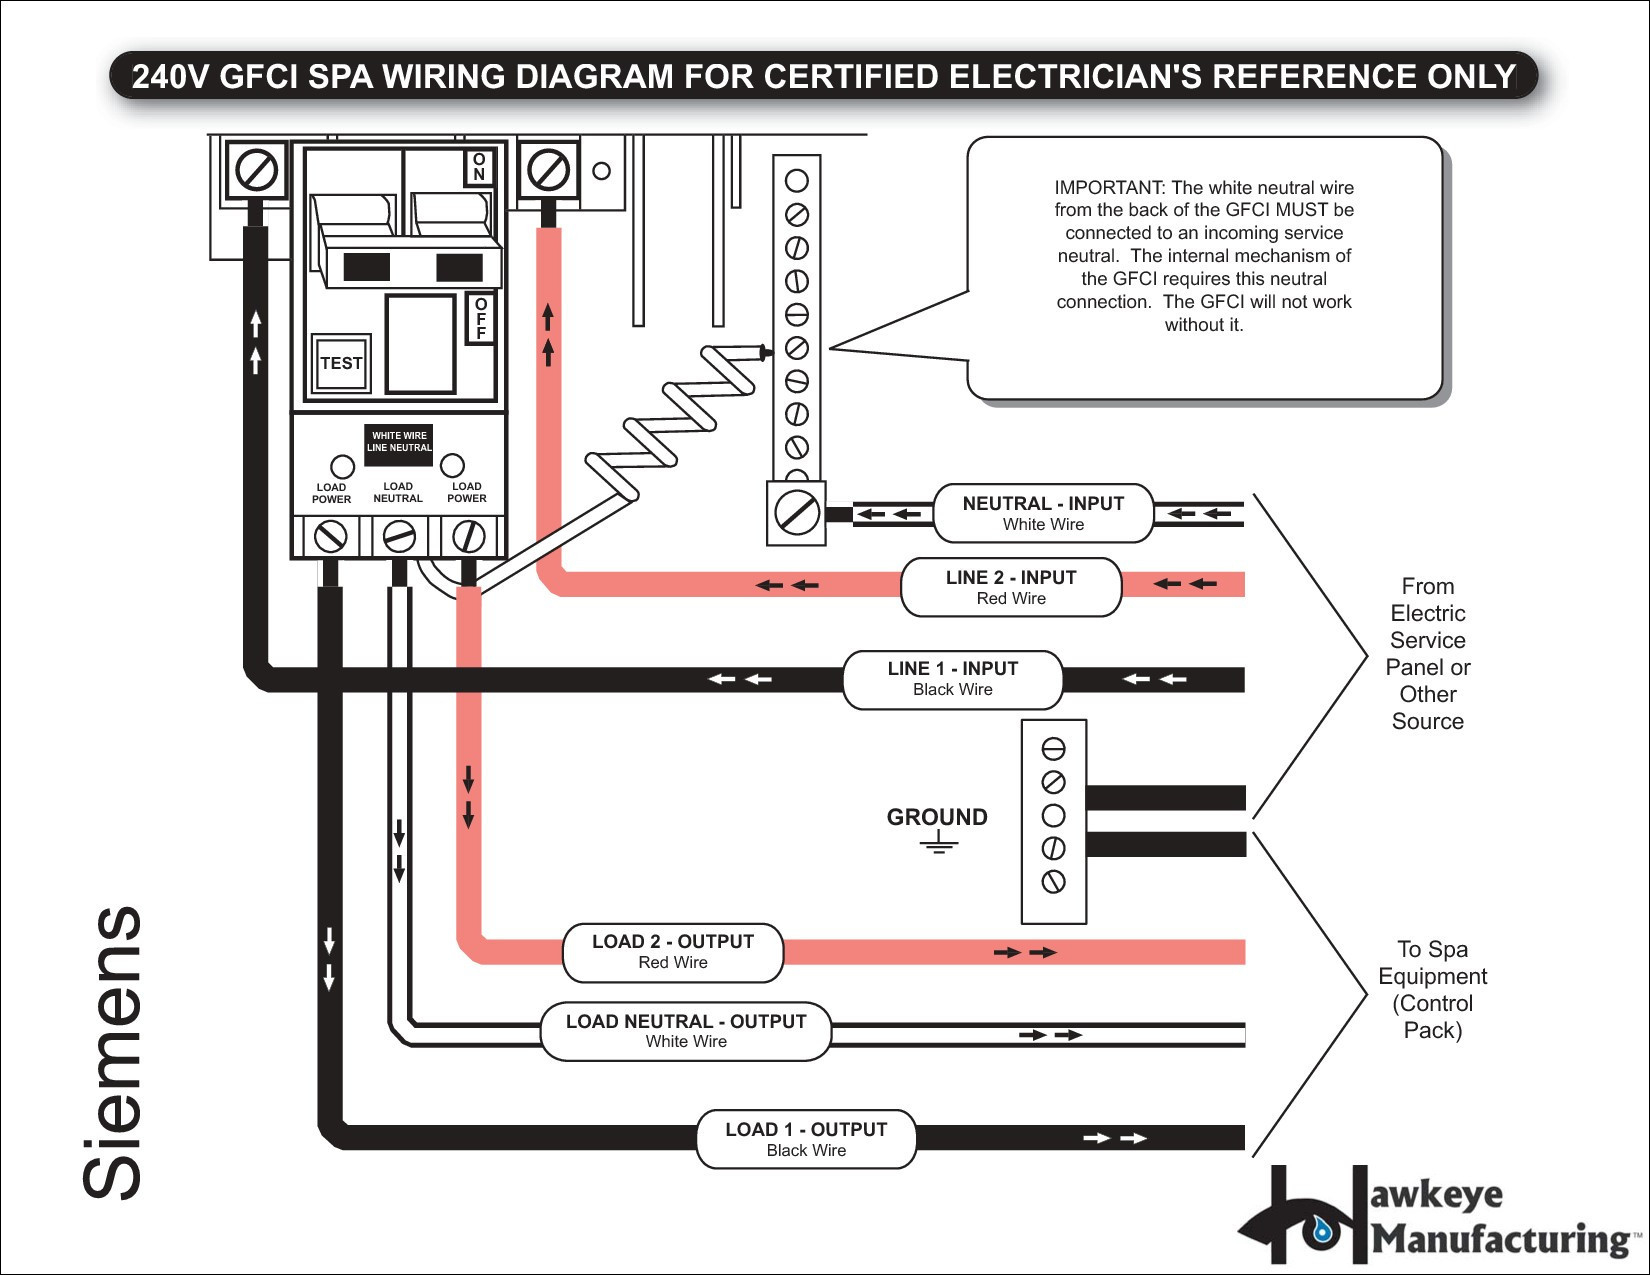 [DIAGRAM_1JK]  Shunt Breaker Wiring Diagram Diagram Base Website Wiring Diagram -  DEFINITIONHRDIAGRAM.MAGENTAPRODUCTION.FR | Breaker Panel Wiring Diagram |  | Diagram Base Website Full Edition - magentaproduction